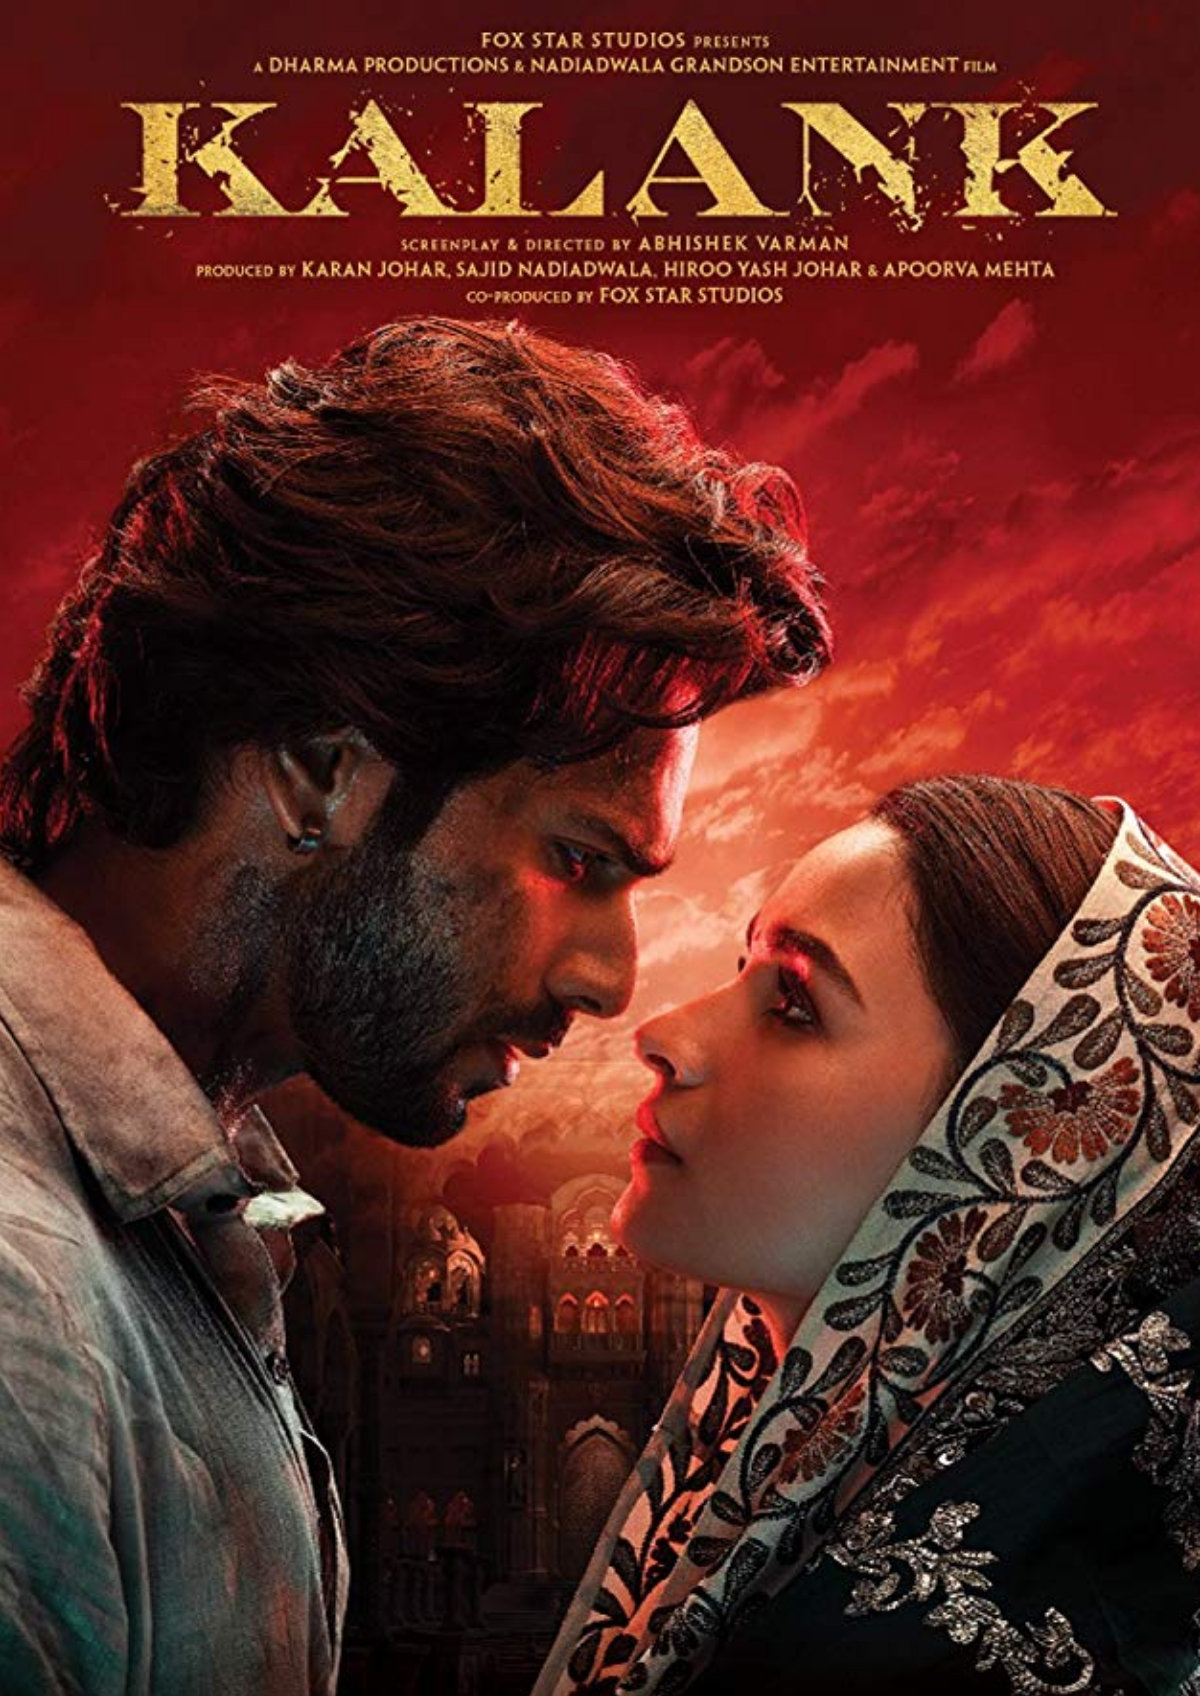 'Kalank' movie poster